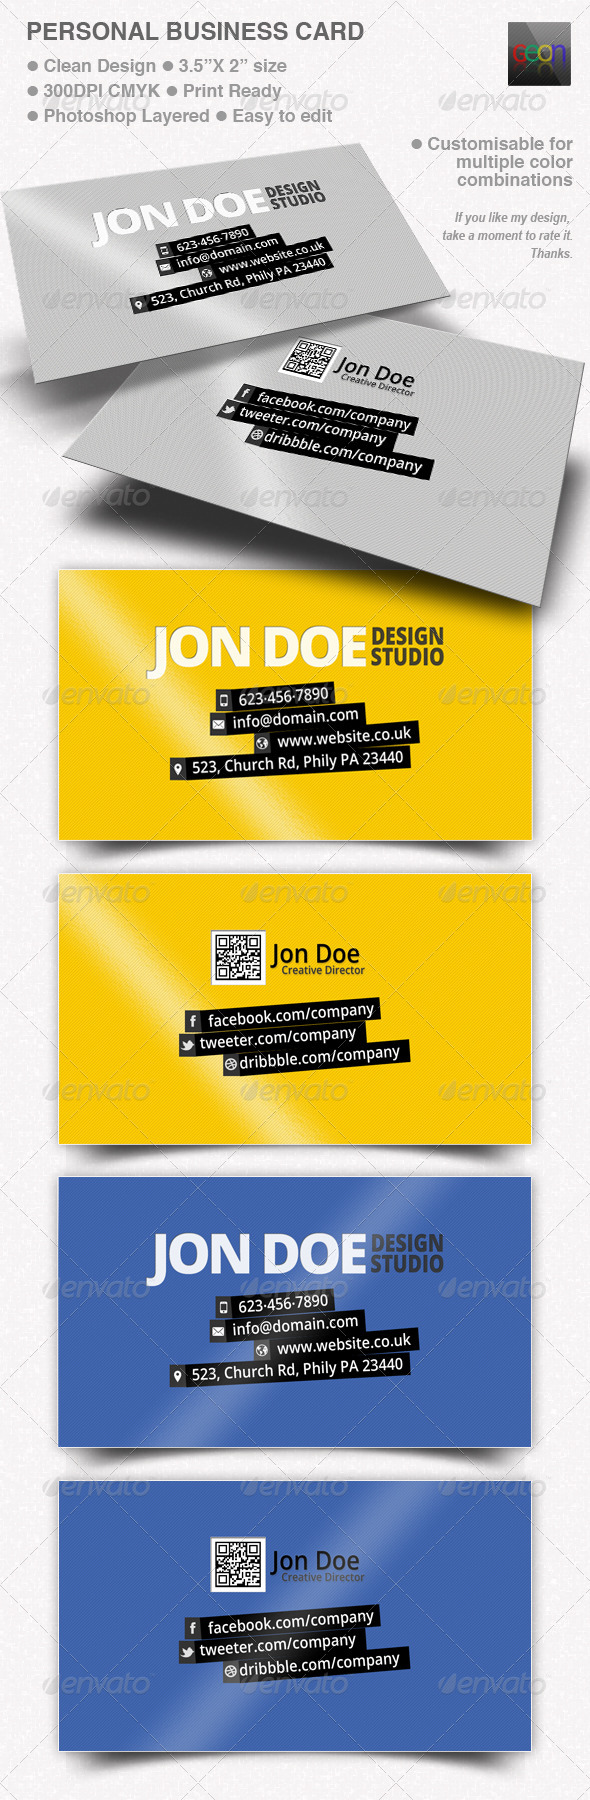 GraphicRiver Personal Business Card Black & Grey 4850991